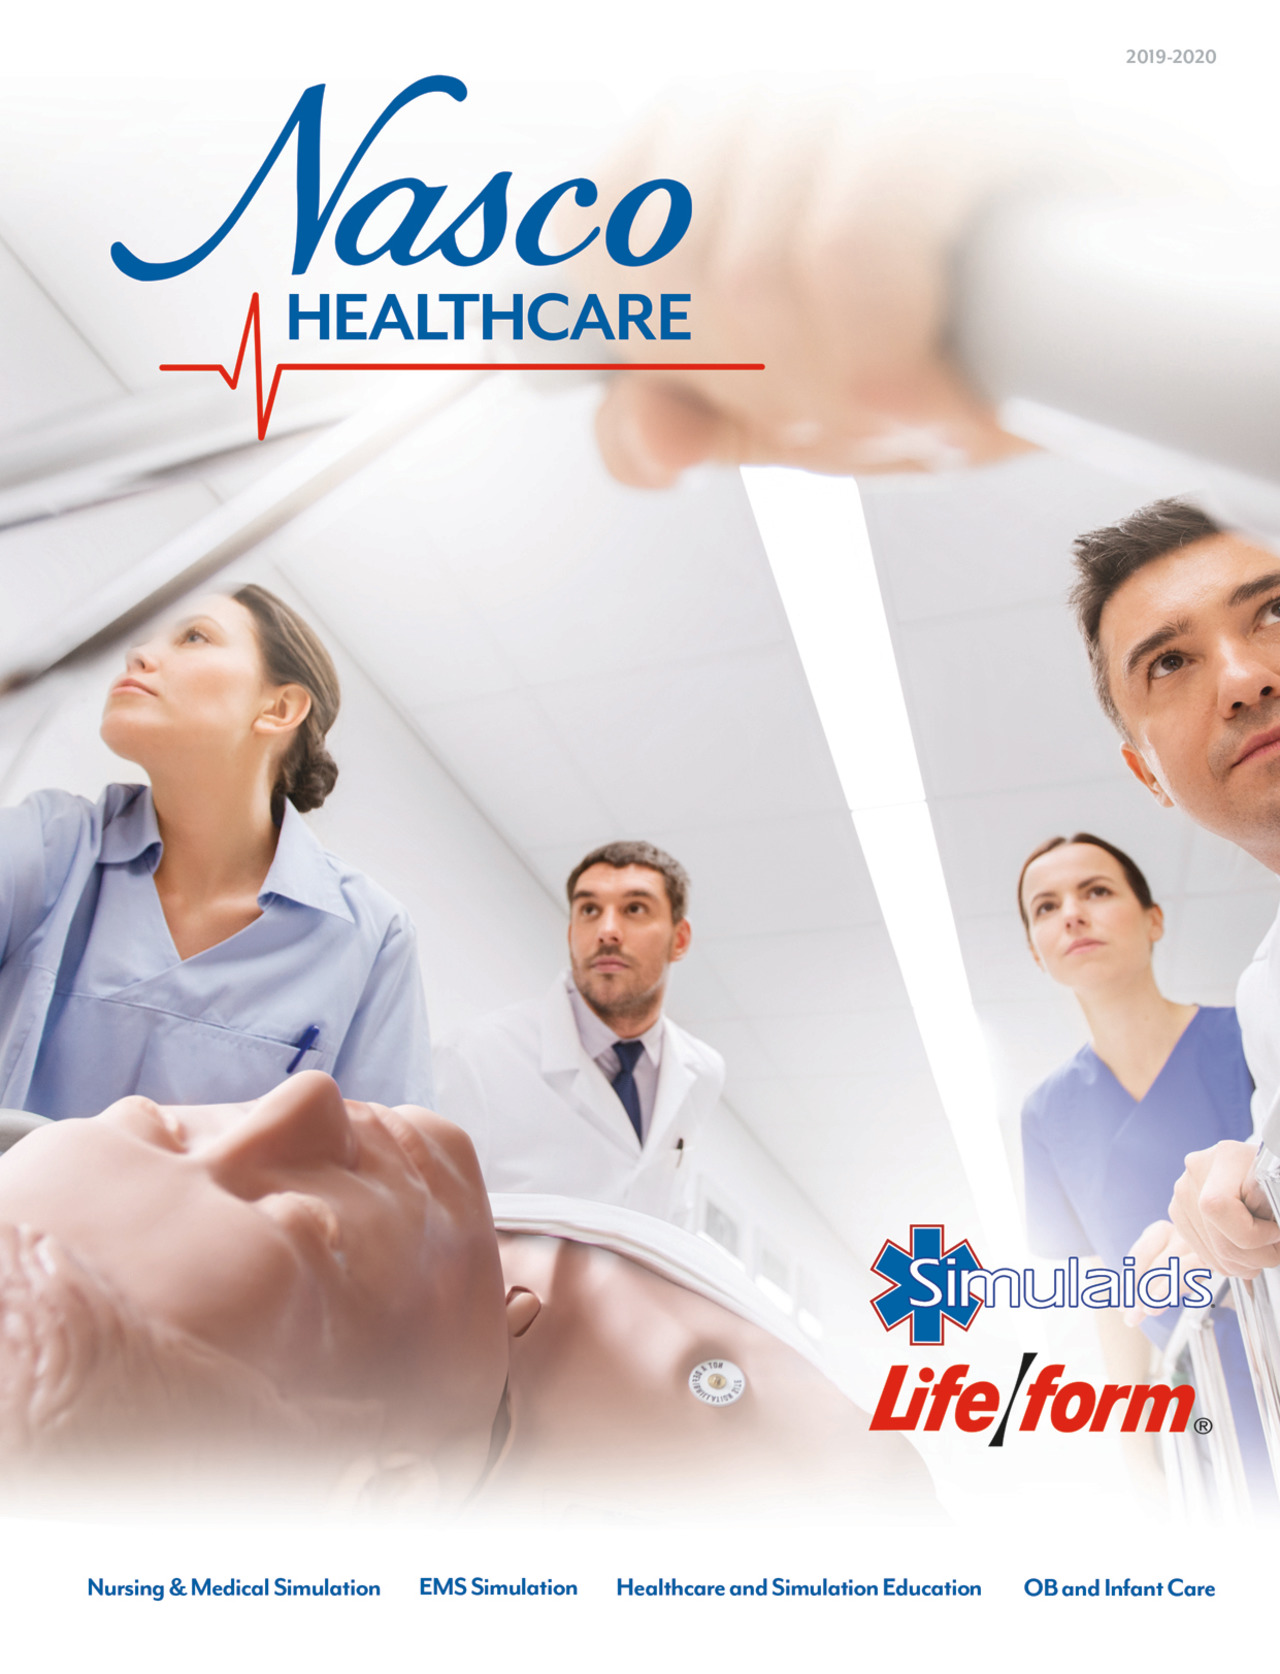 a4d7b3159c8 Nasco Healthcare Releases New 2019-2020 Healthcare Product Guide